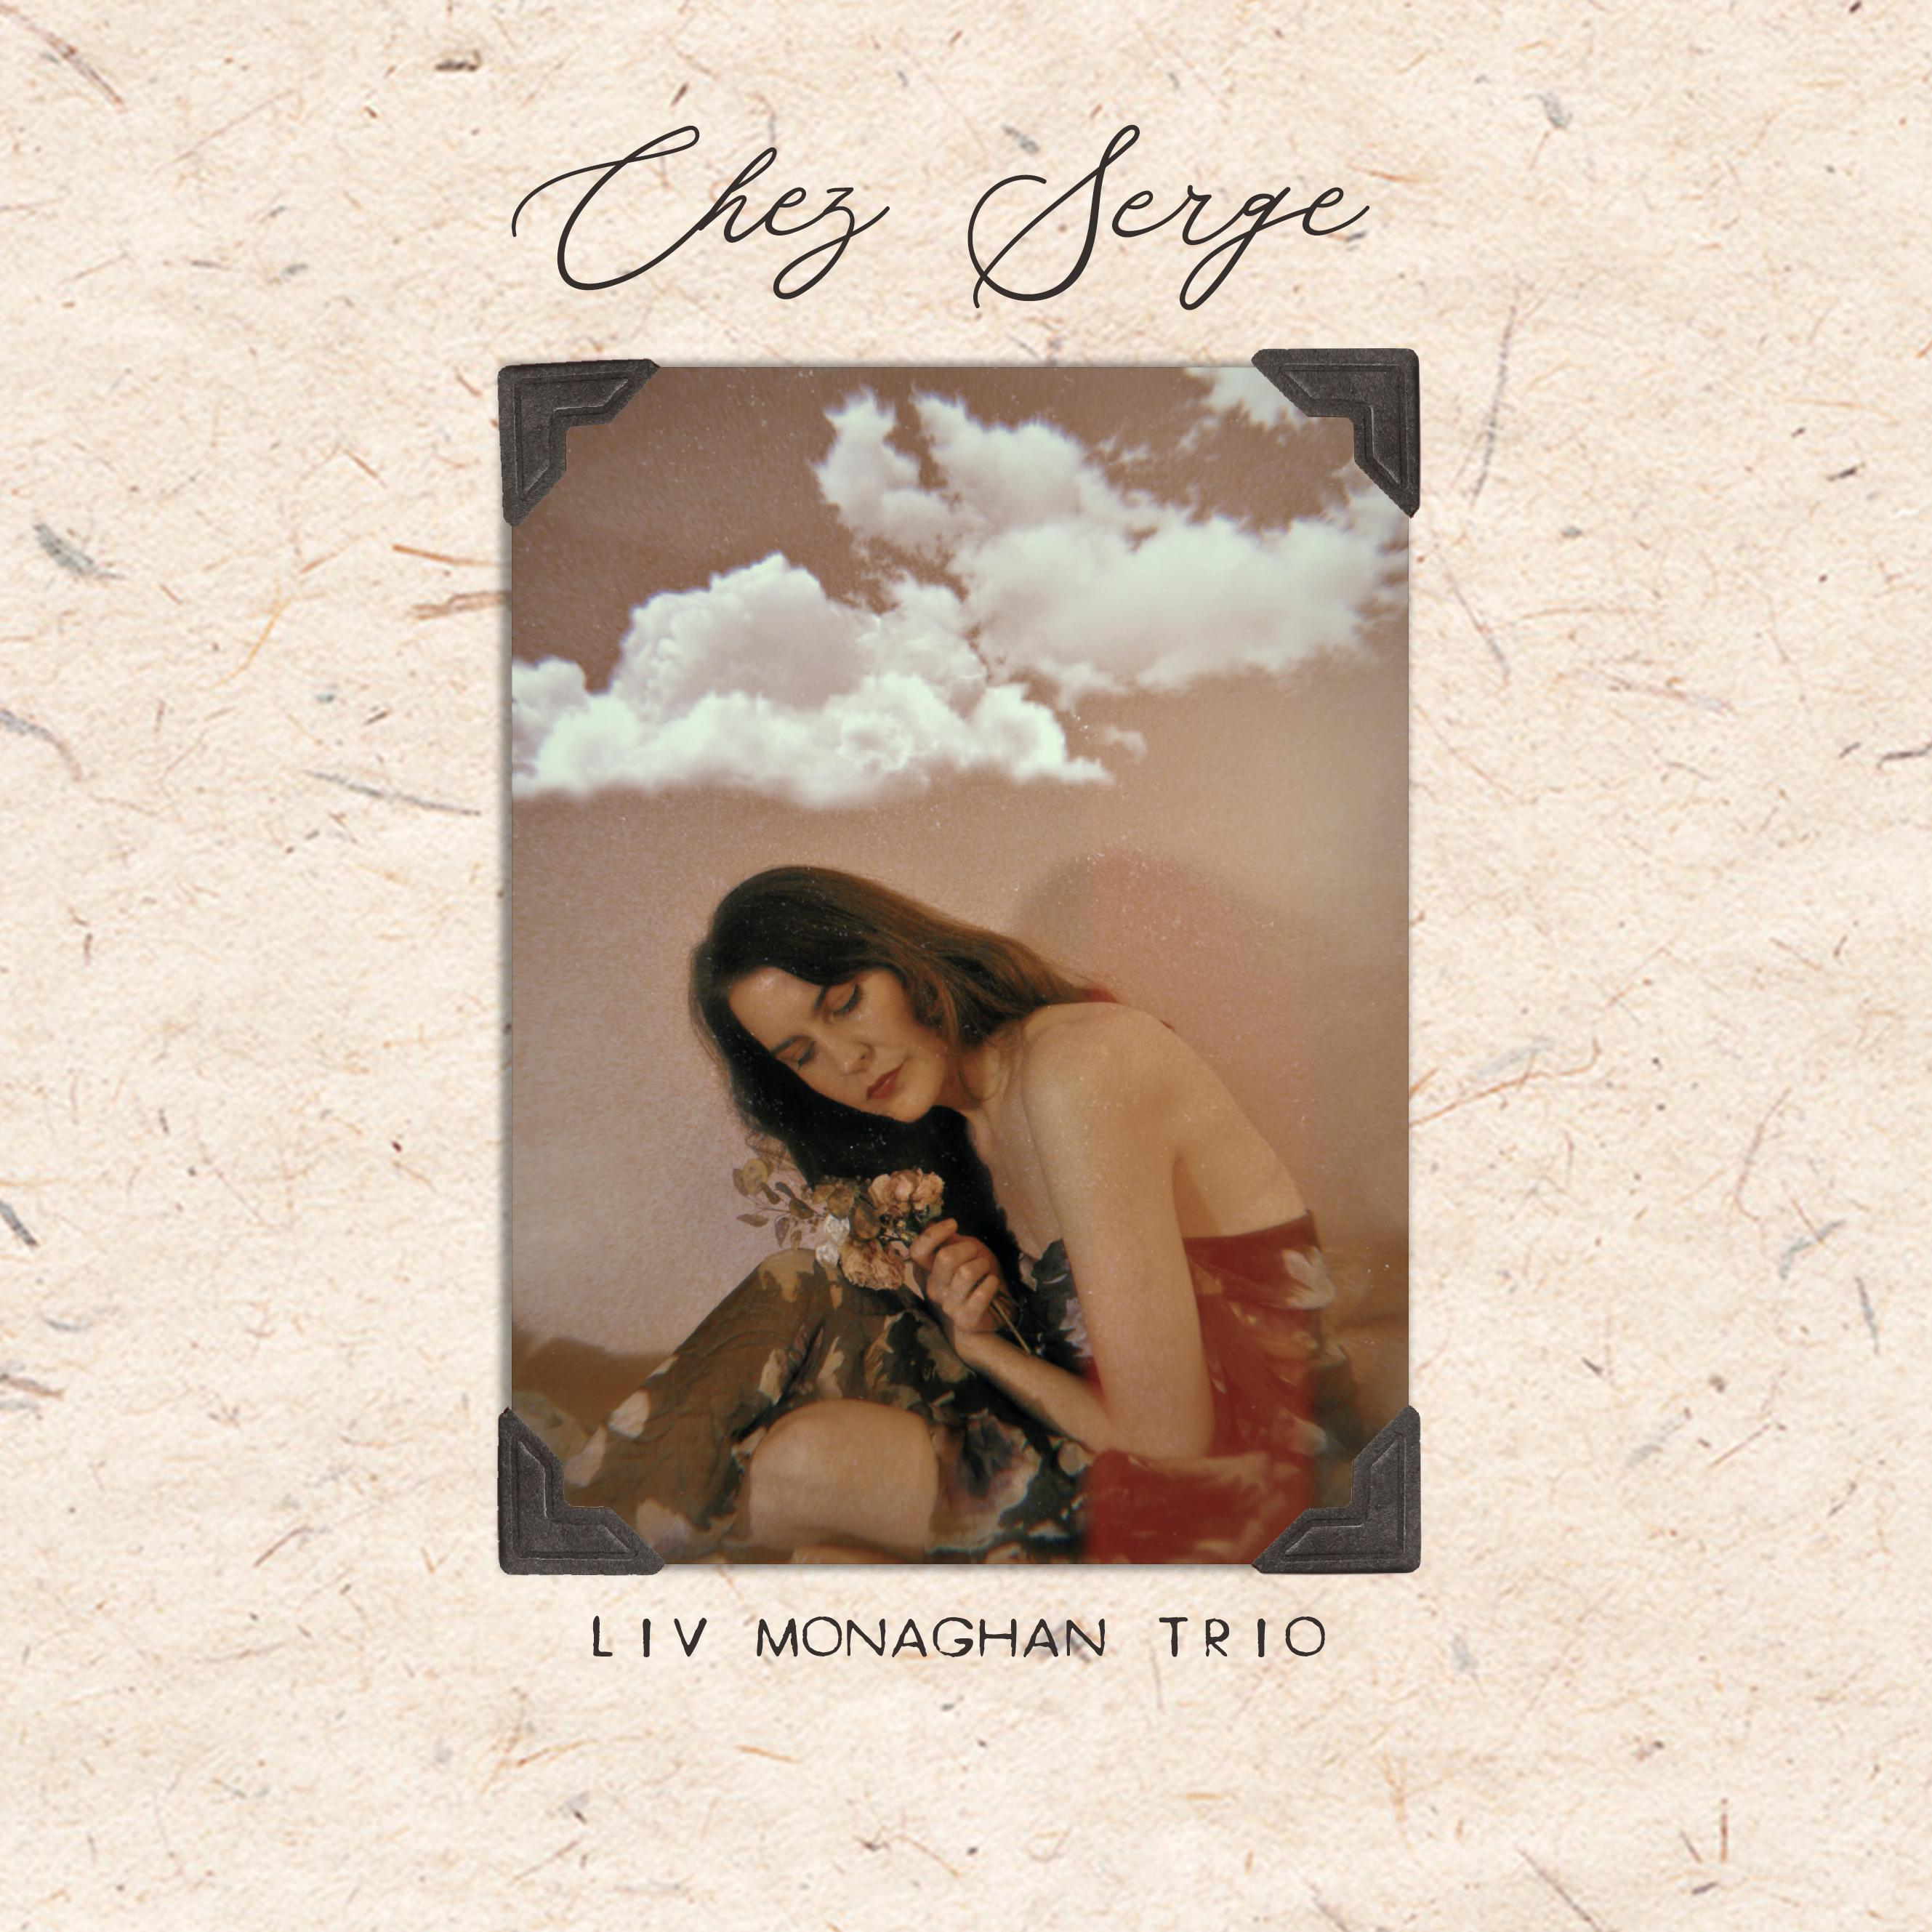 Liv Monaghan Trio Presents New project Chez Serge